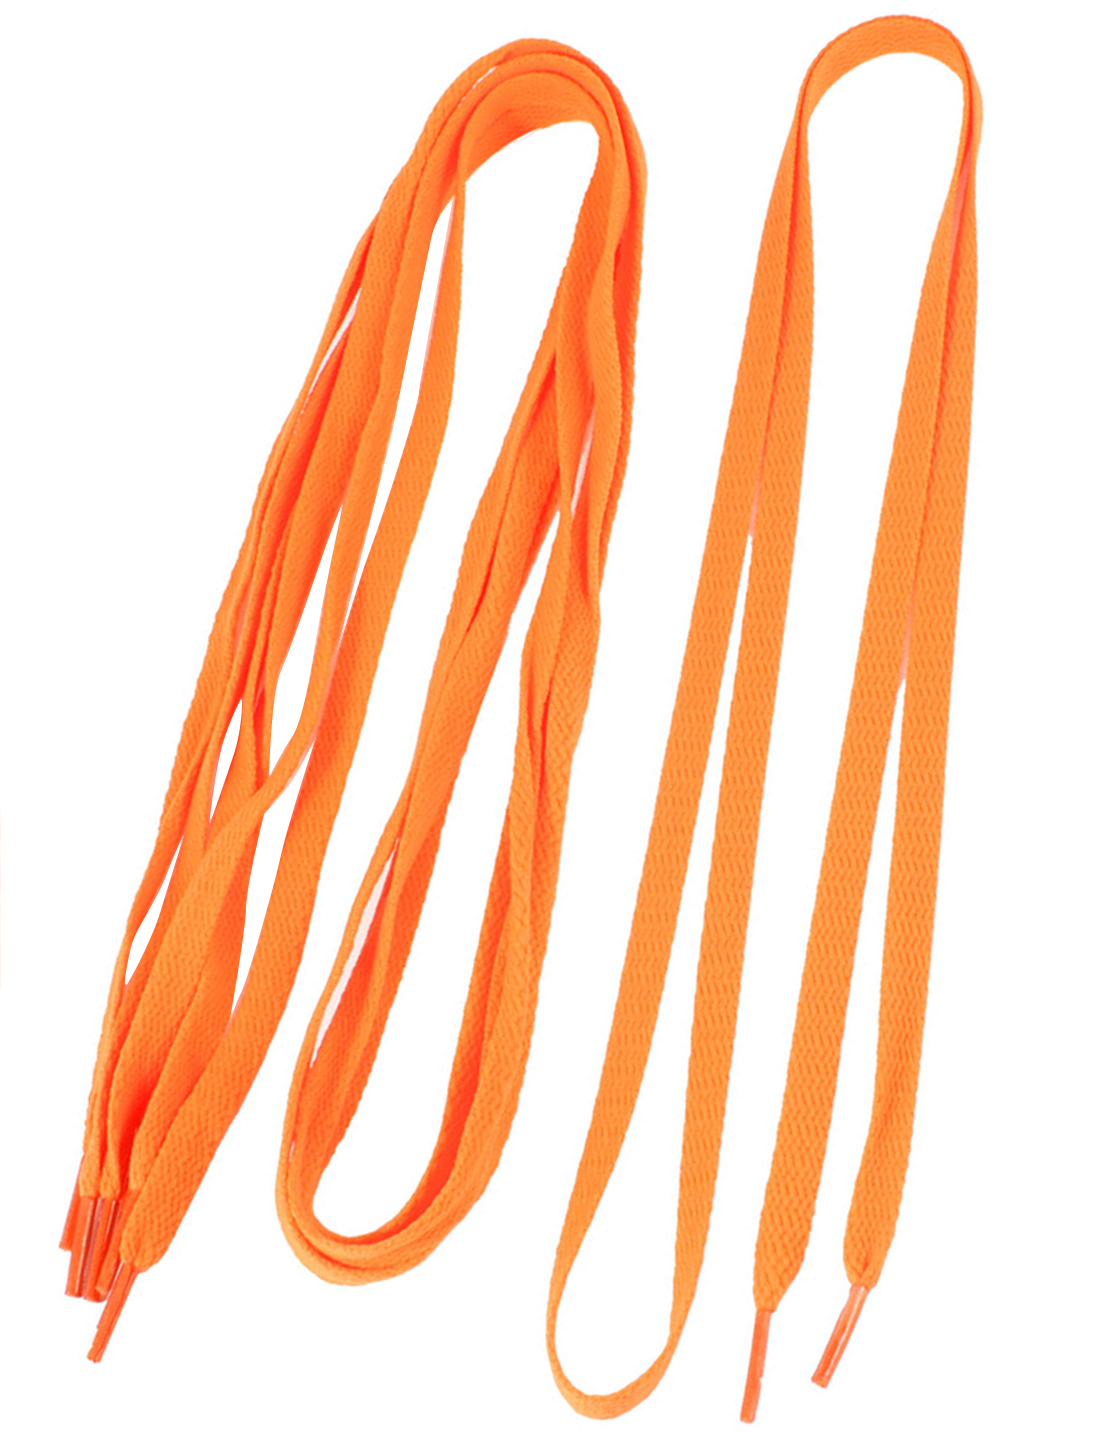 2-Pairs-Sneakers-Shoes-Orange-Shoe-Lace-Strings-for-Both-Women-Men